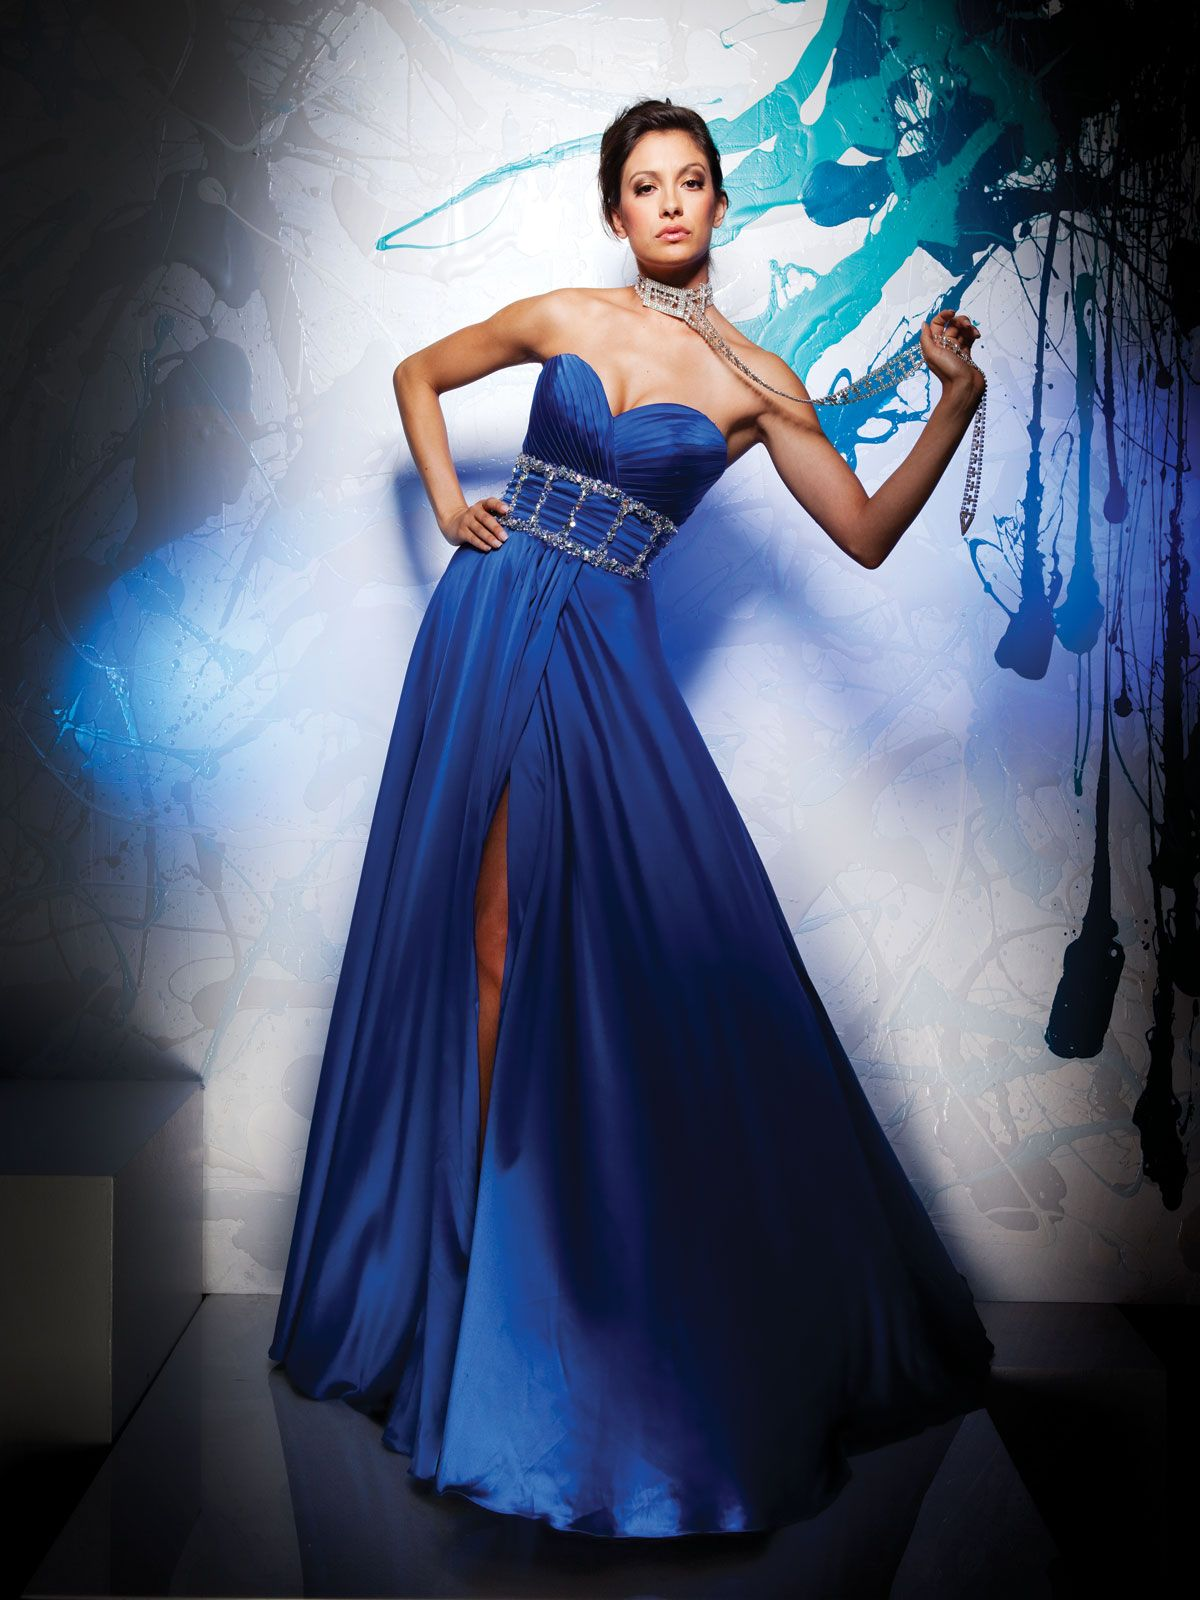 Blue A Line Prom Dress With Strapless Sweetheart Neckline Pleated Bodice Extends Into Beading Framed W Elegant Prom Dresses Sweetheart Prom Dress Prom Dresses [ 1600 x 1200 Pixel ]